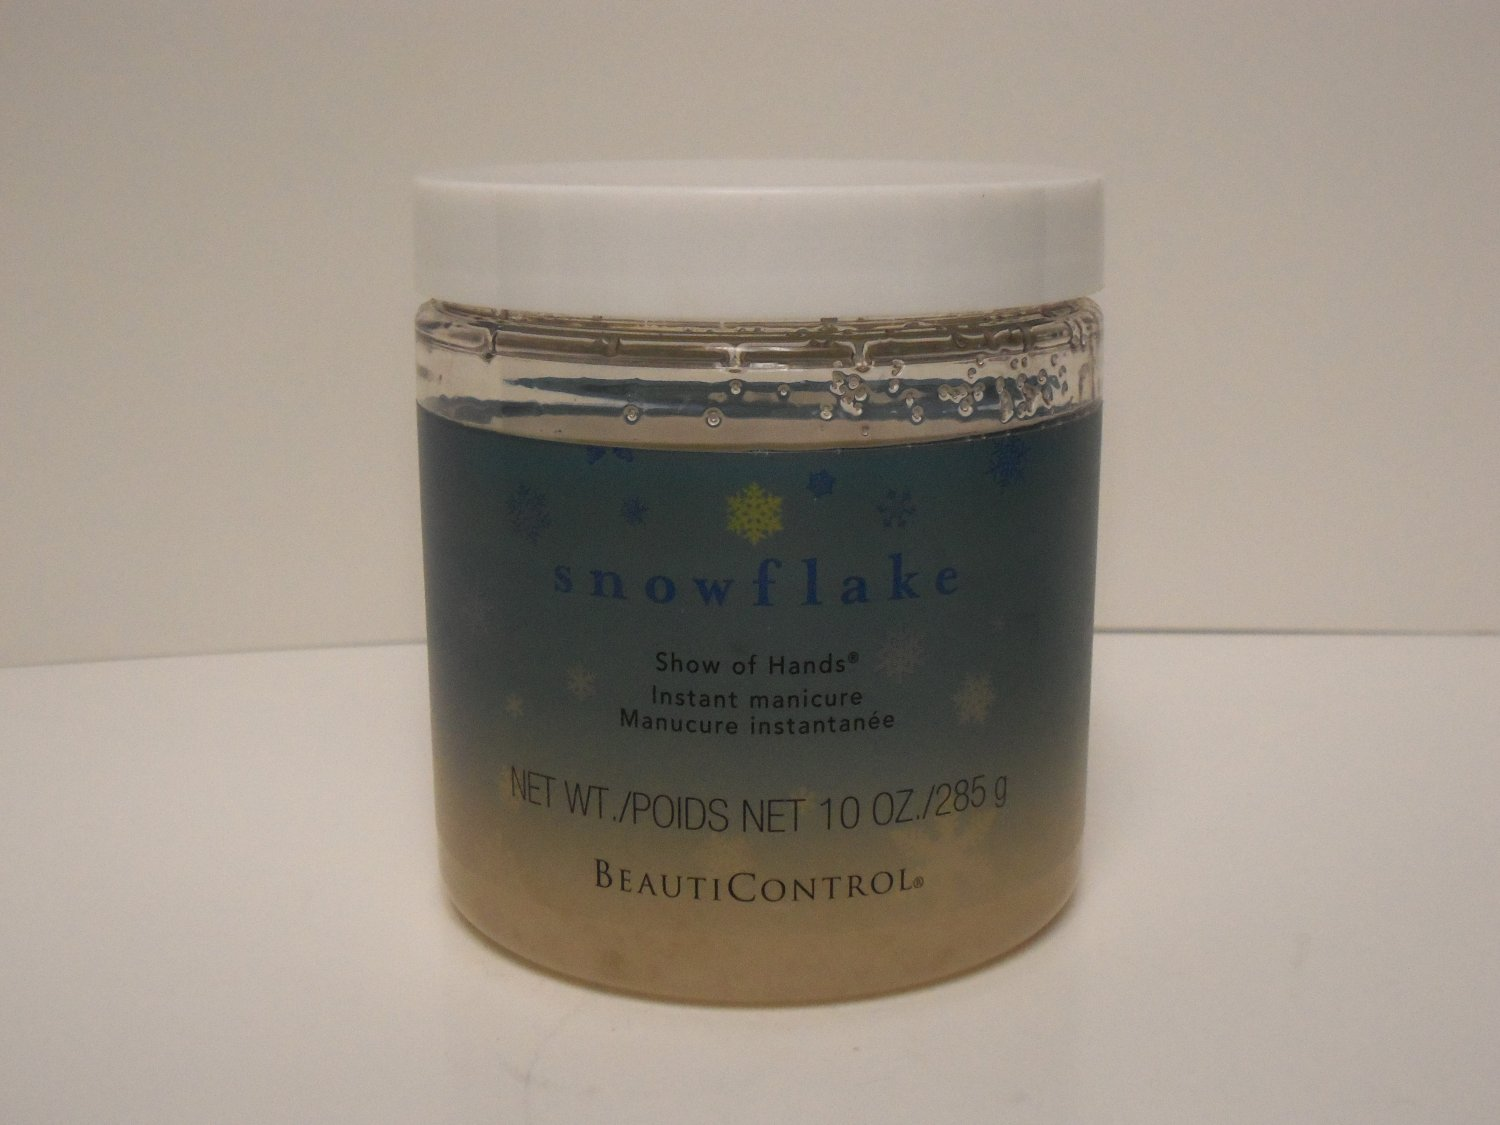 Beauticontrol Snowflake Show Of Hands Instant Manicure